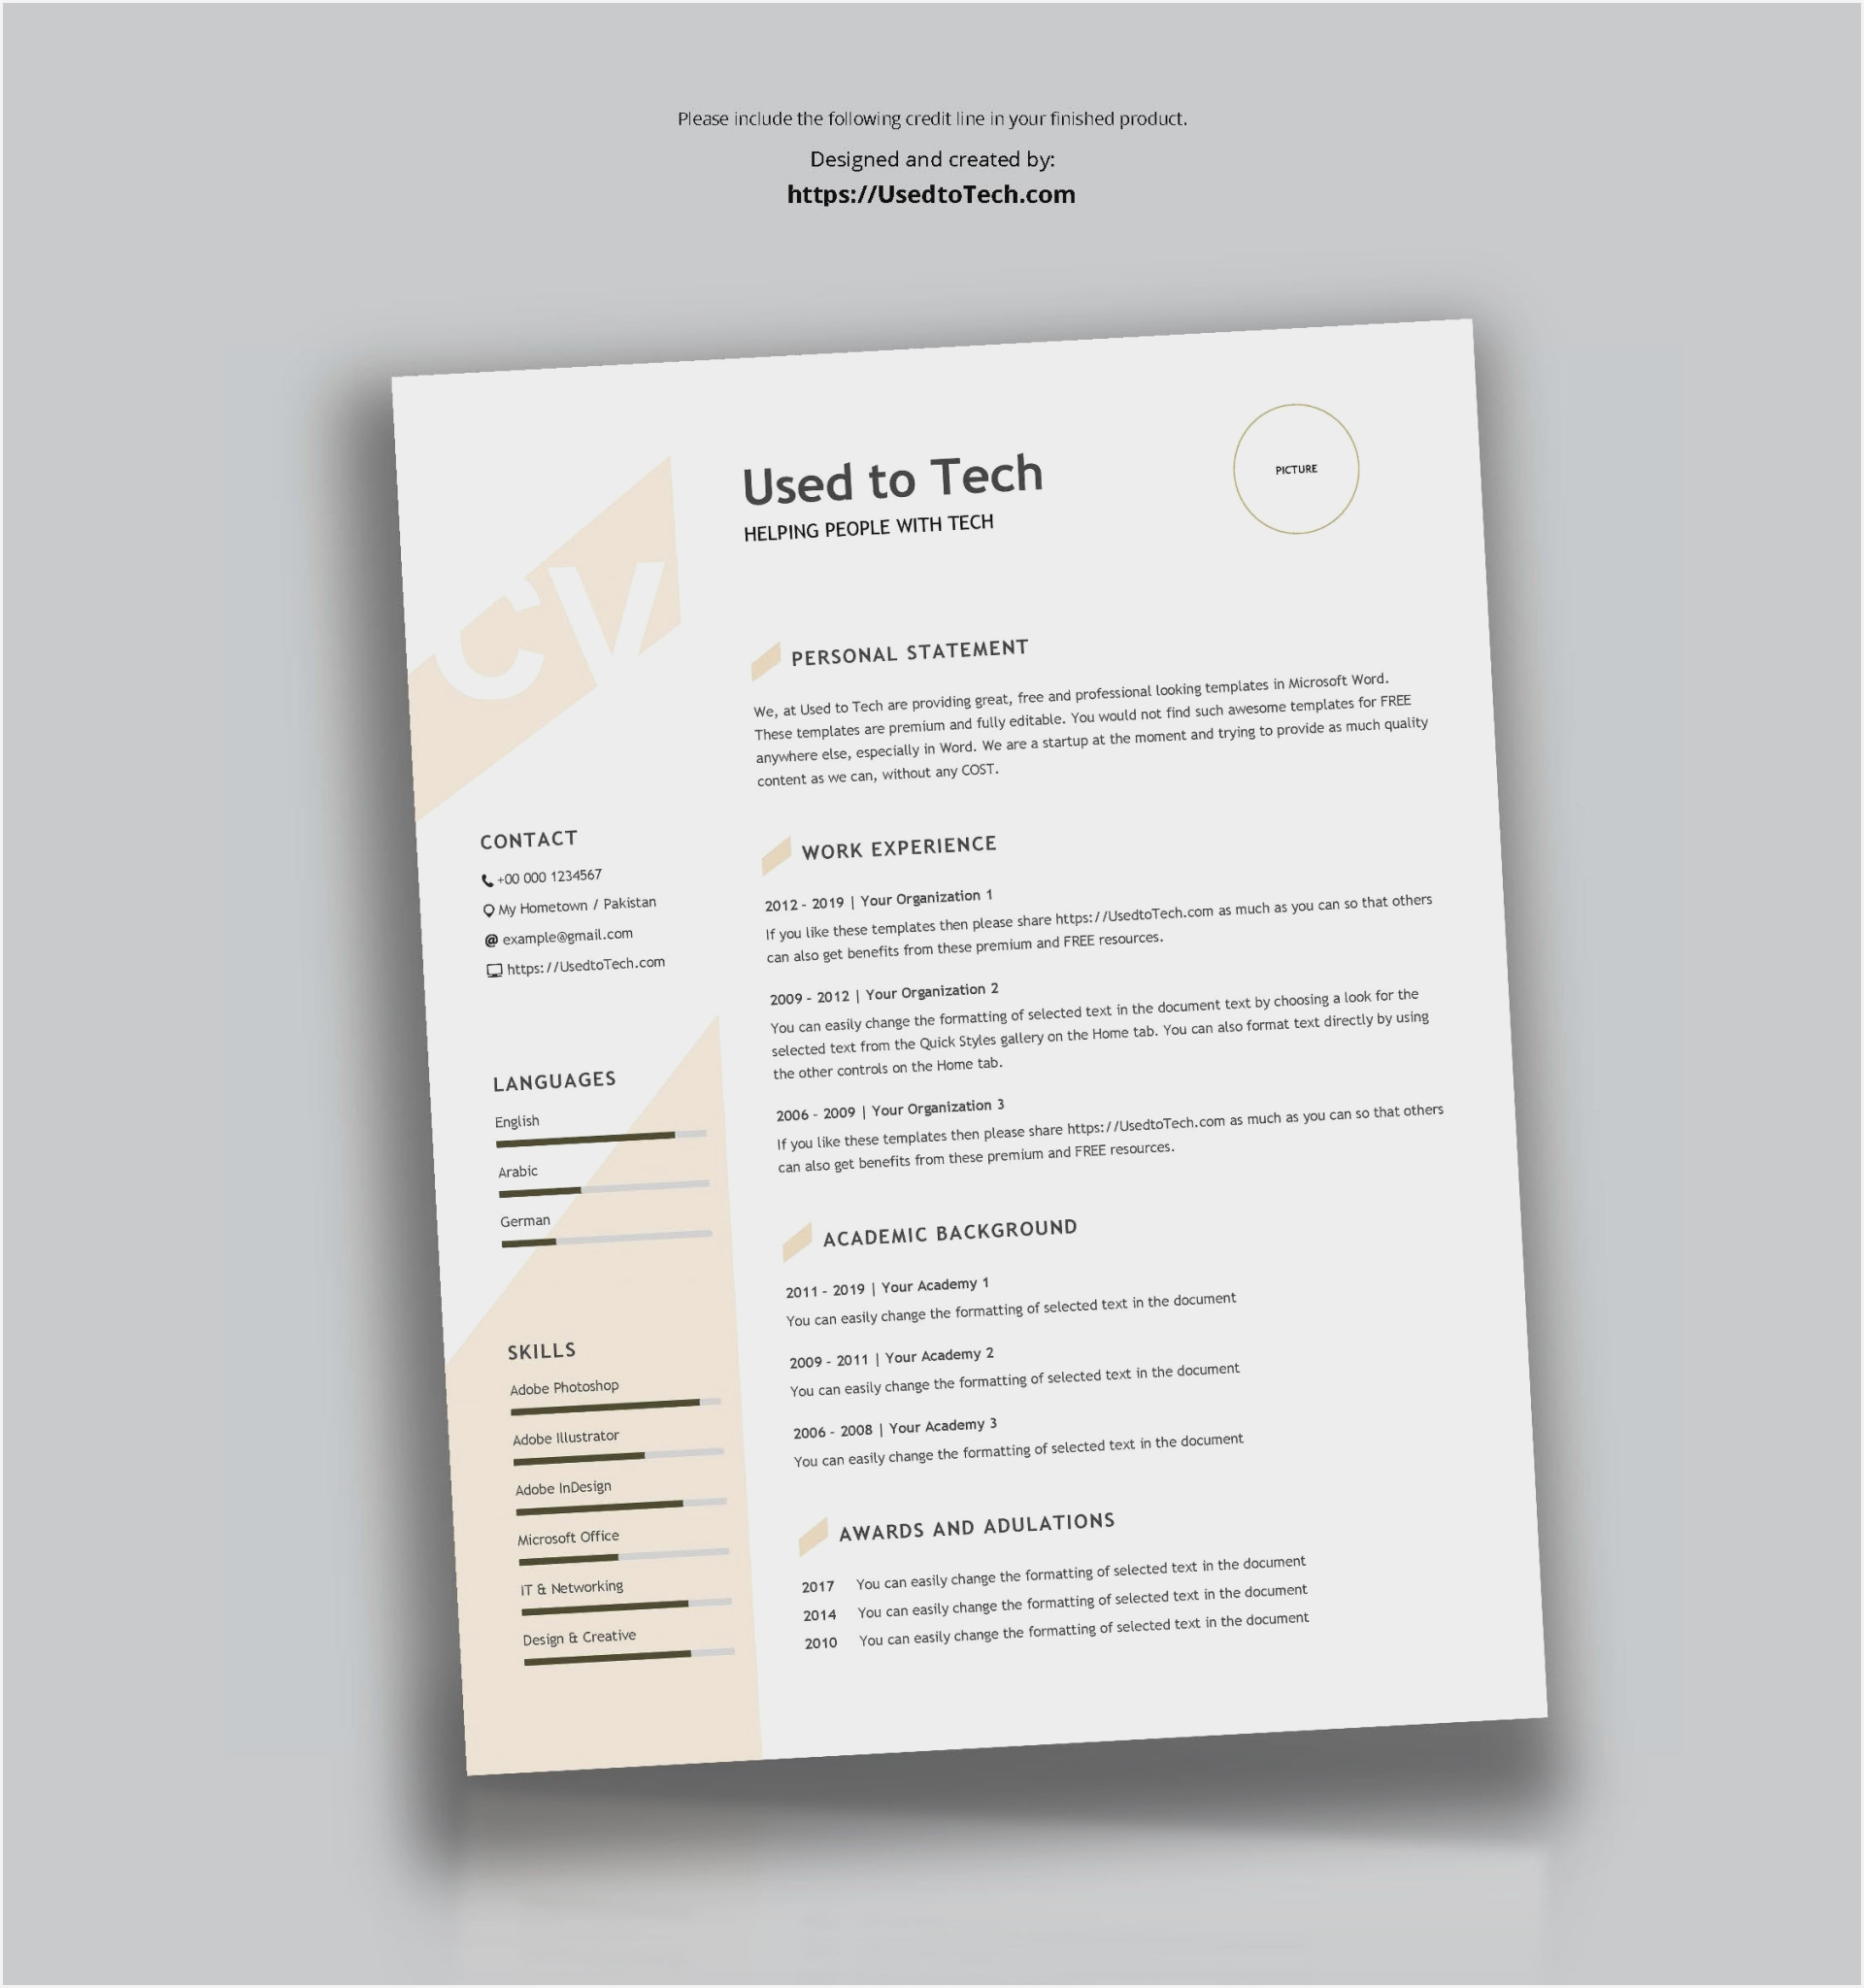 free resume/cv template for graphic designers. Apa Style 7th Edition Word Template